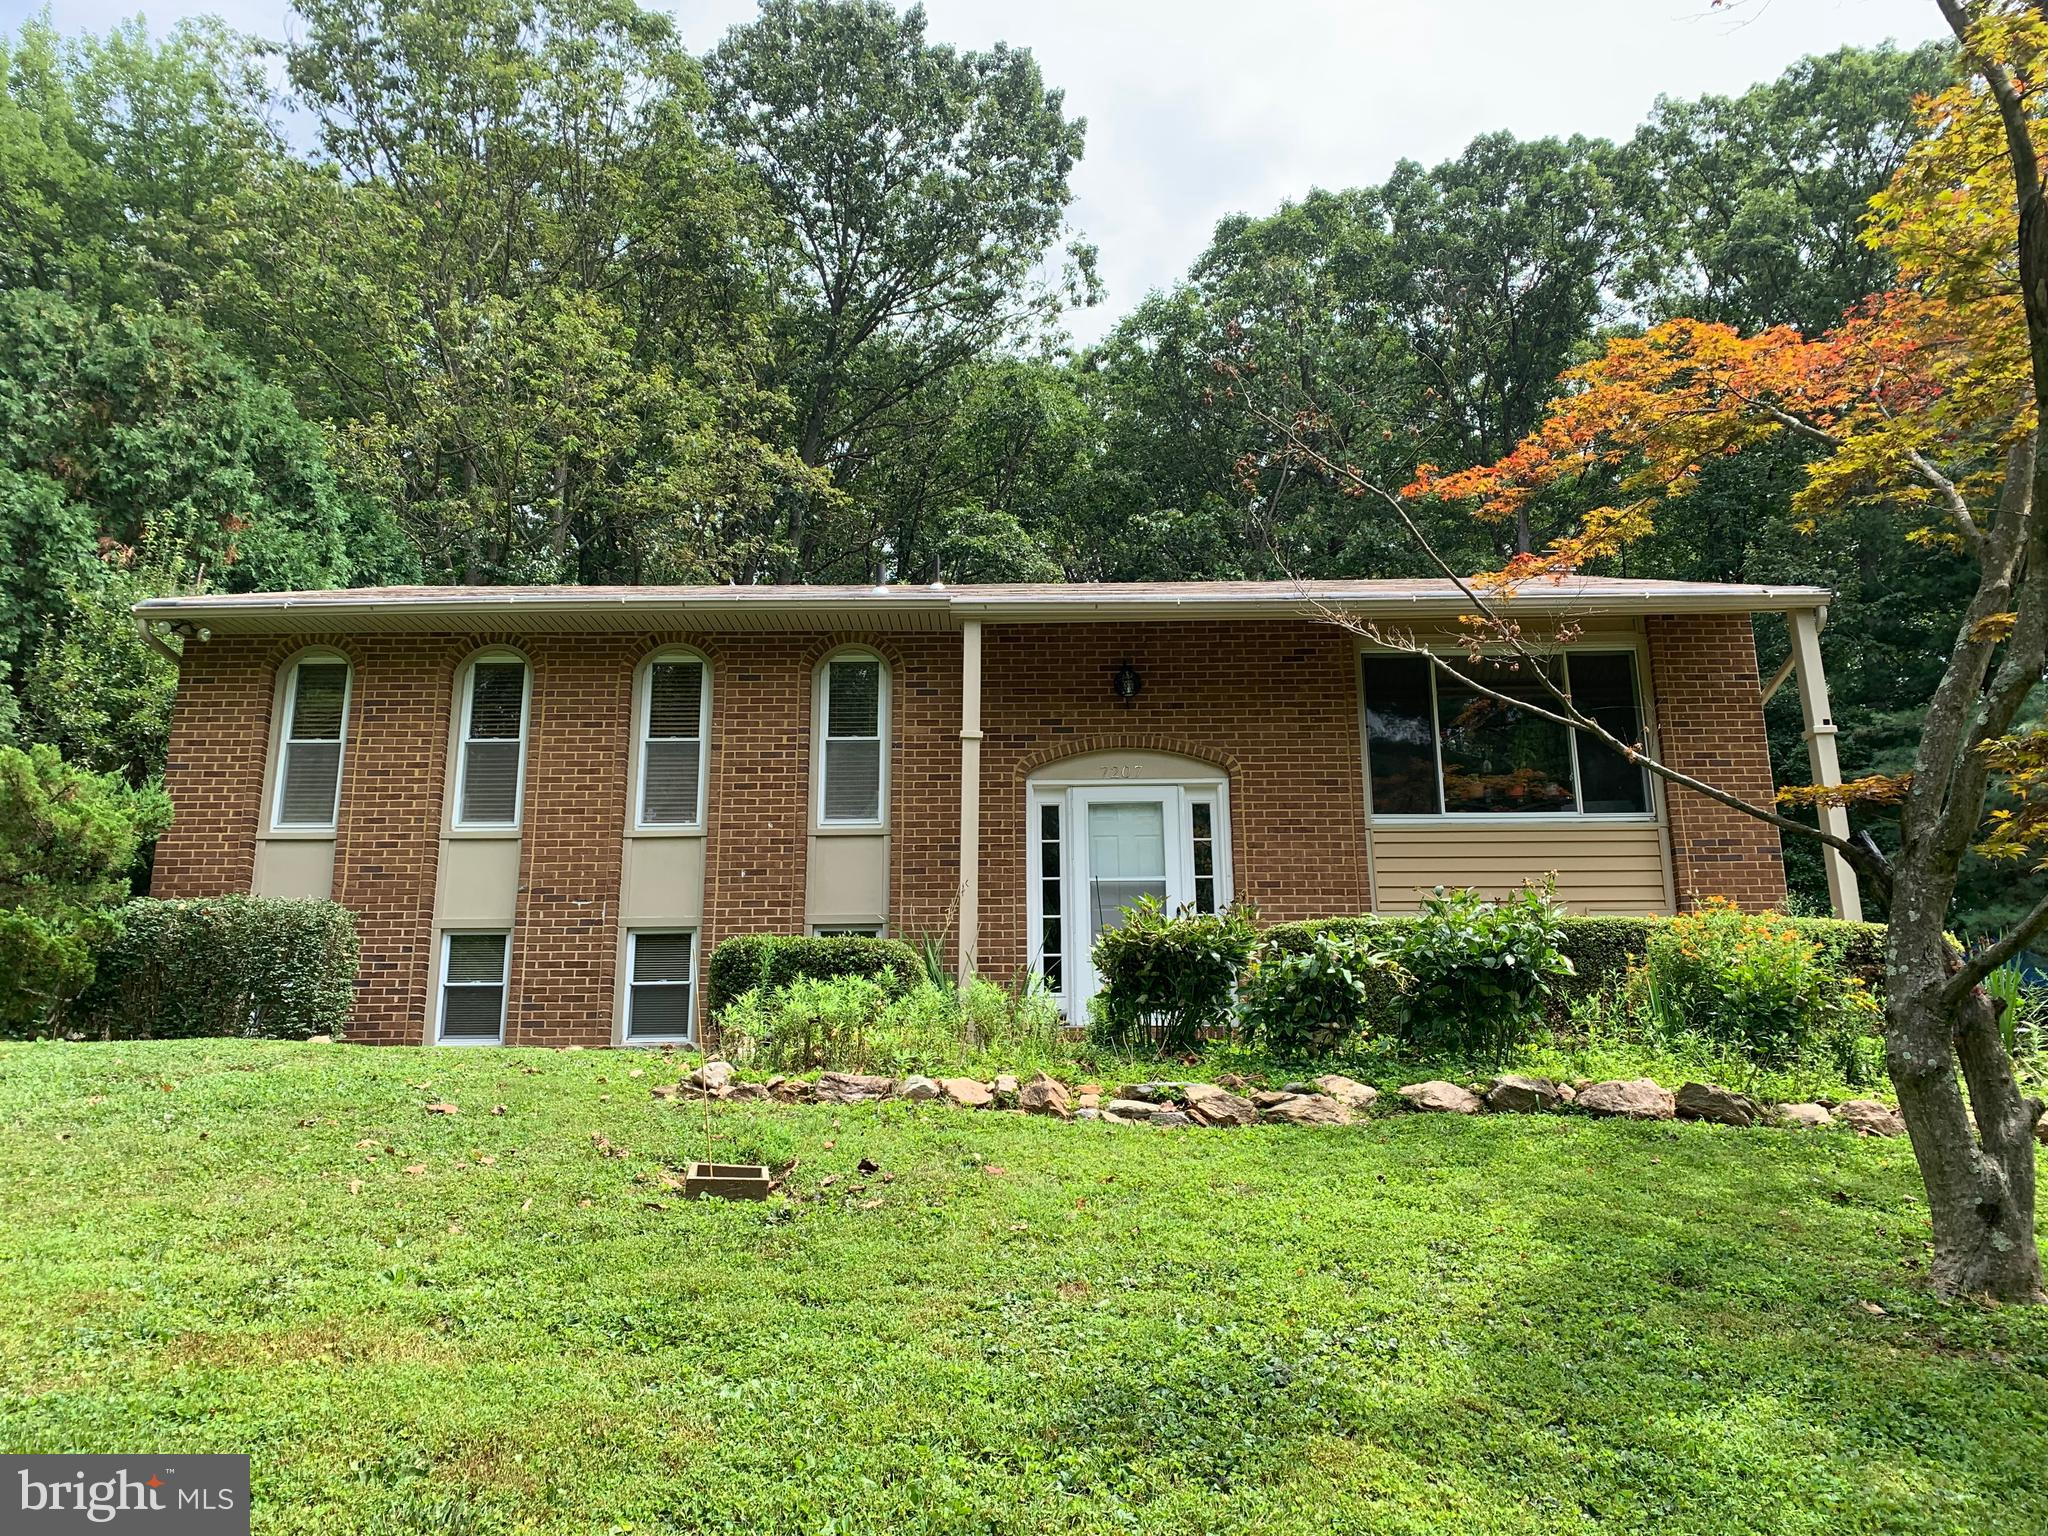 7207 MARRIOTTSVILLE ROAD, MARRIOTTSVILLE, MD 21104